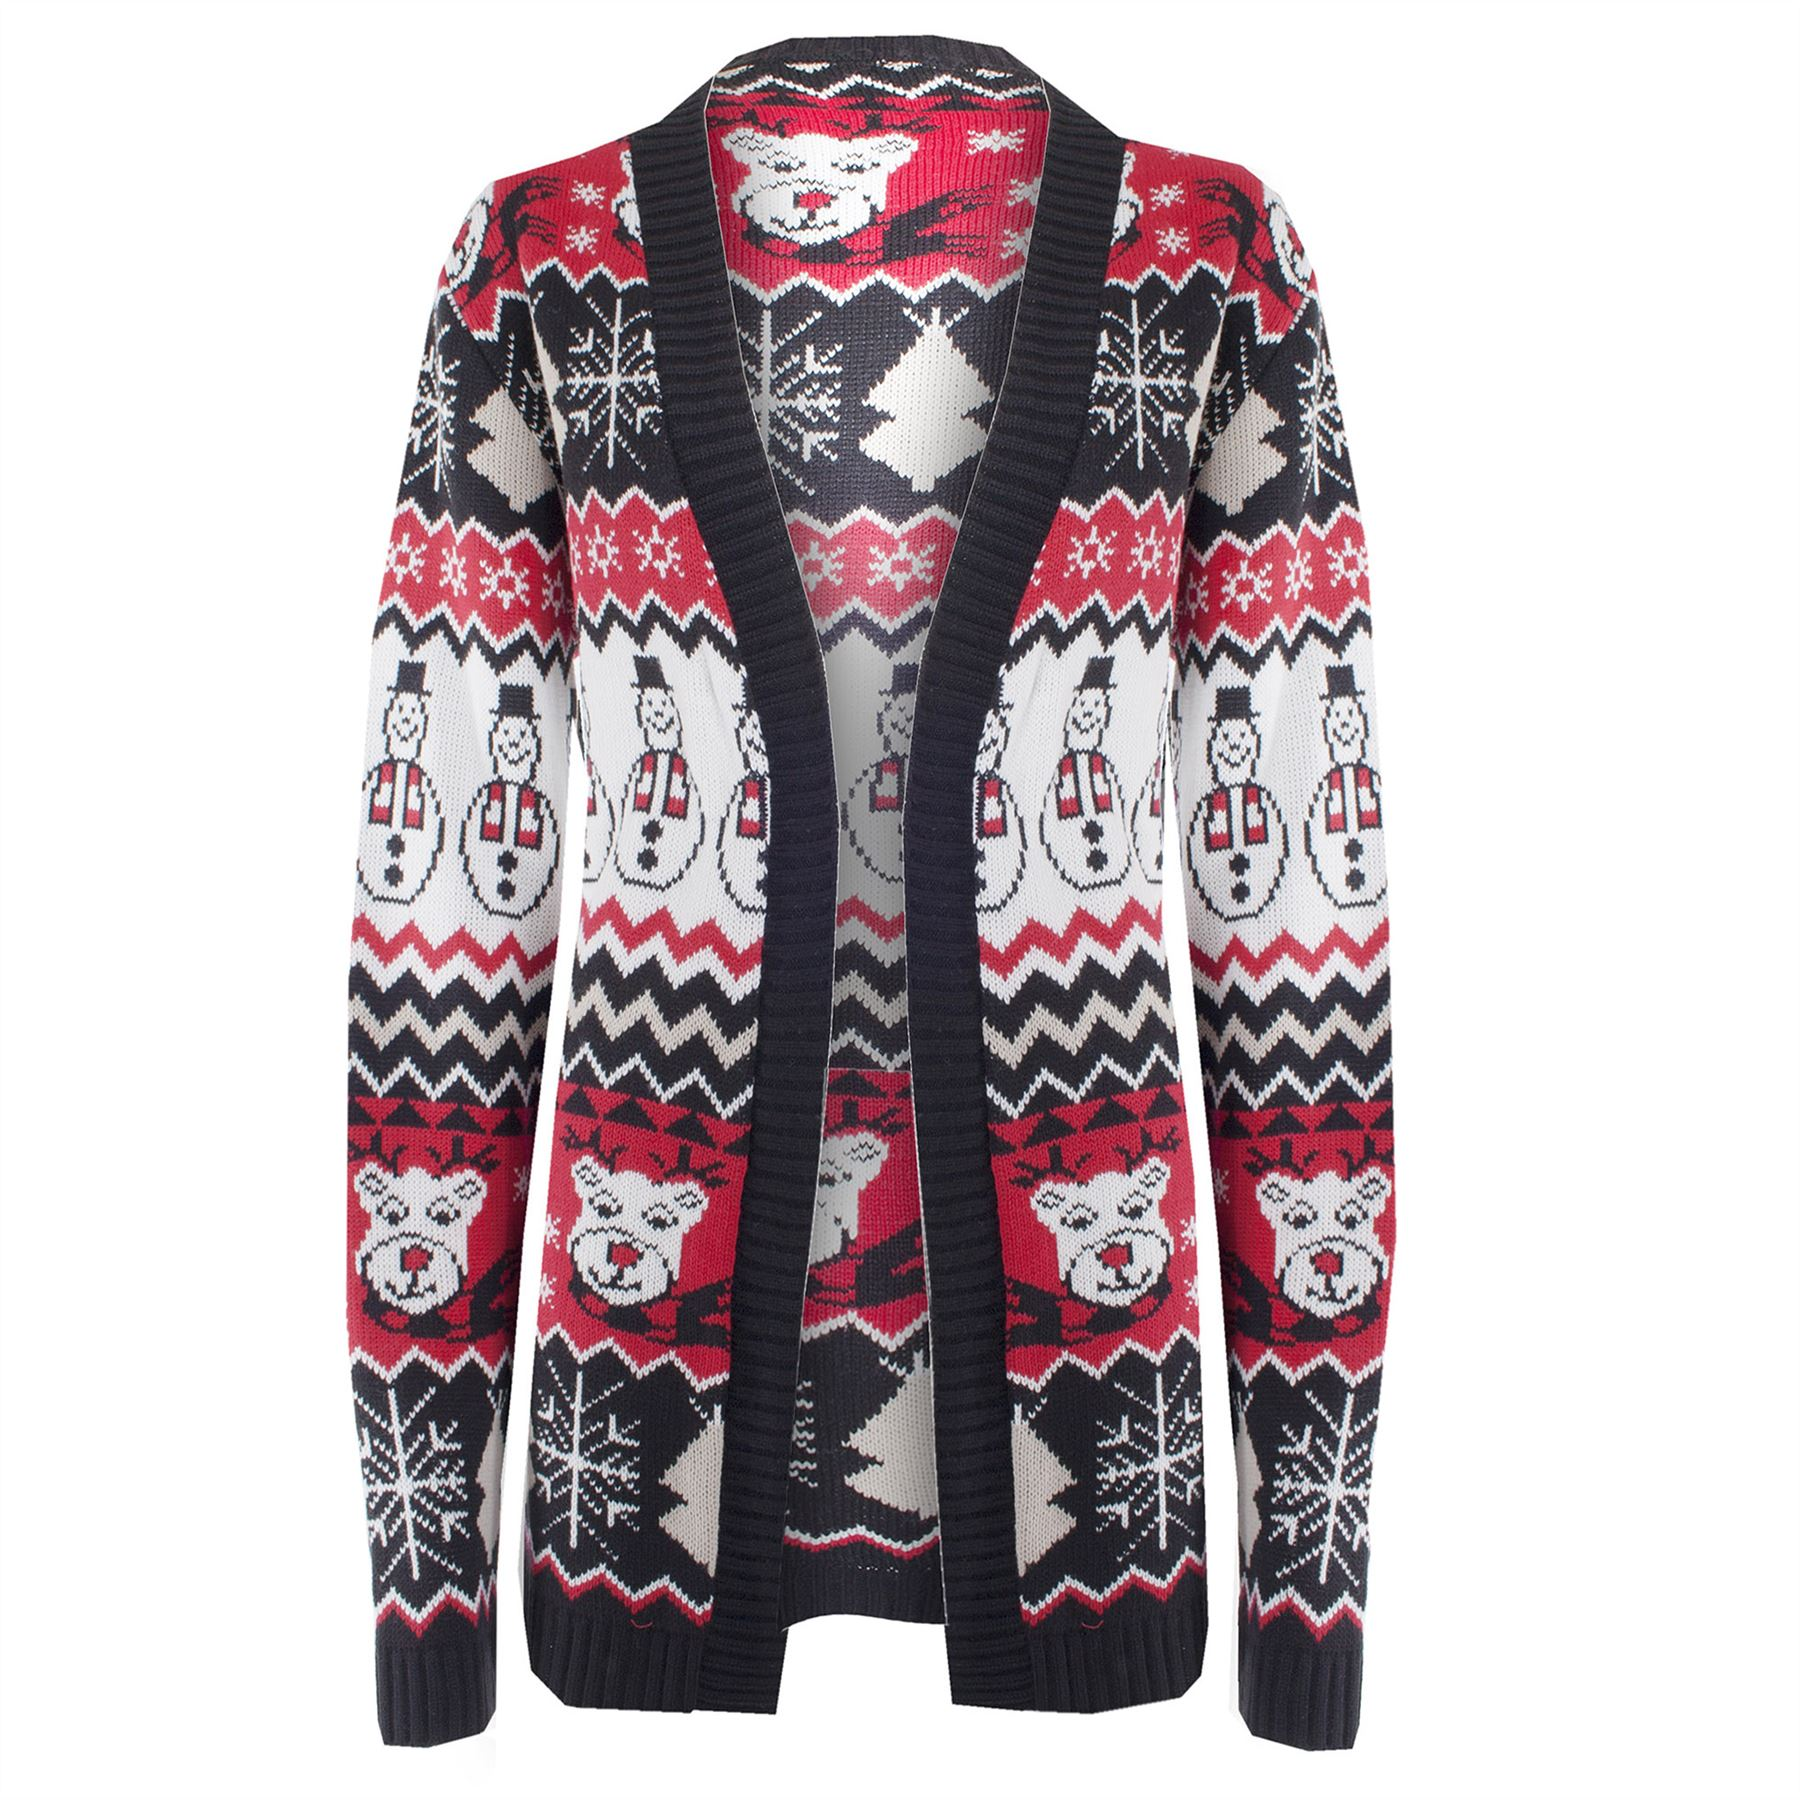 -Crystal & Kobe- Womens black, red, white, sage green and white and black heathered patched background cotton ramie blend button front longsleeve ugly Christmas cardigan sweater, veed neckline with felt snowmen, presents, ornaments, Christmas trees and beaded snowflakes on the front.